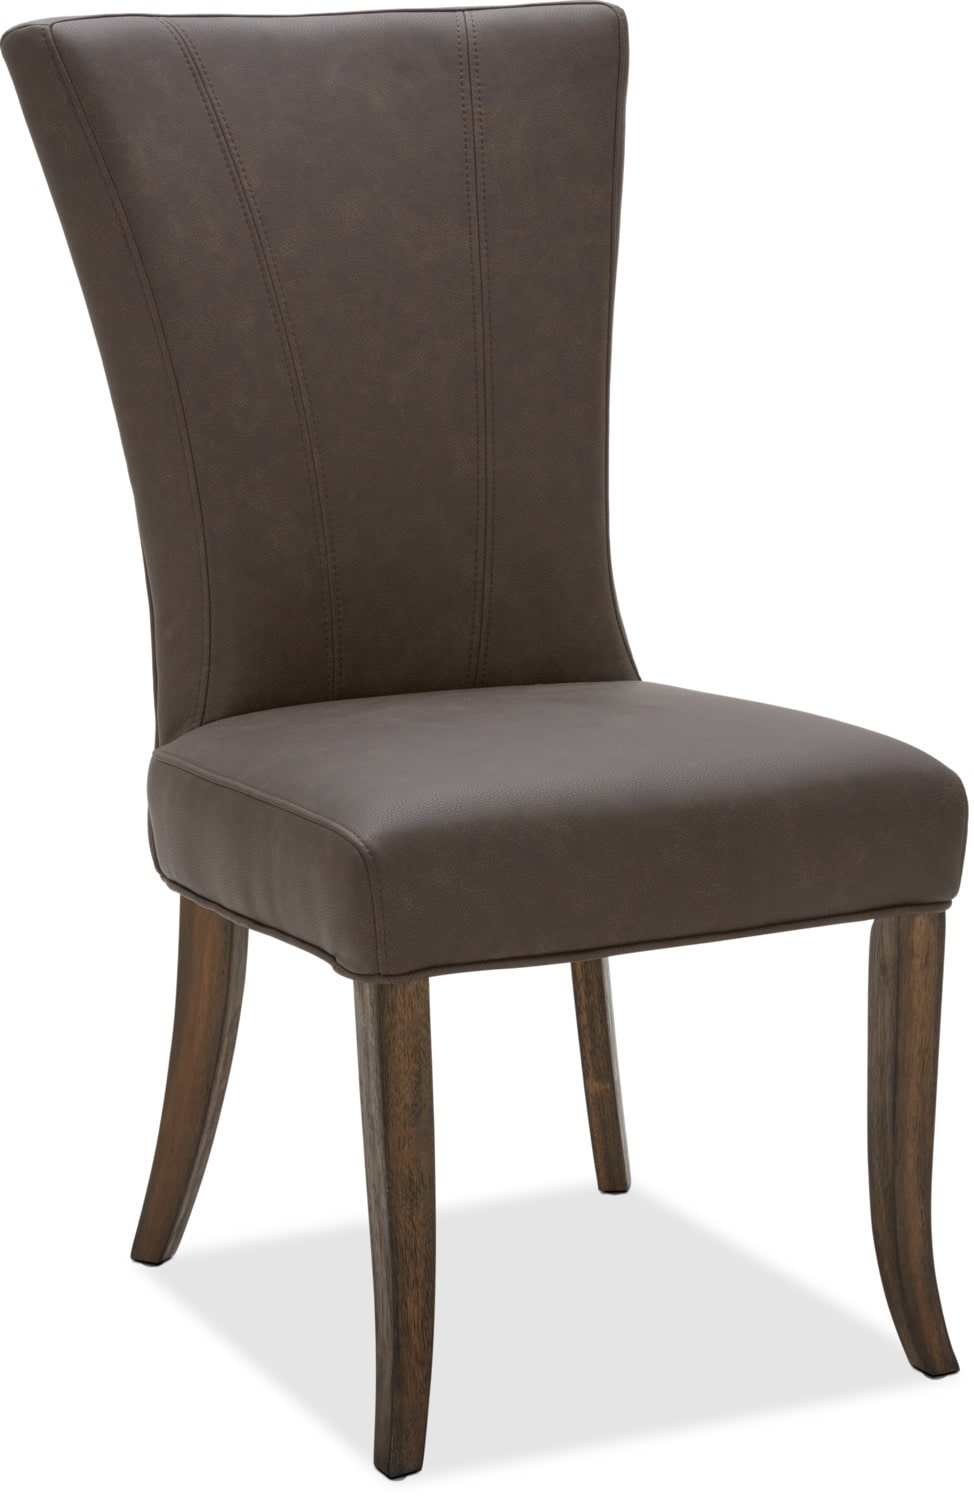 Bree Dining Chair – Brown